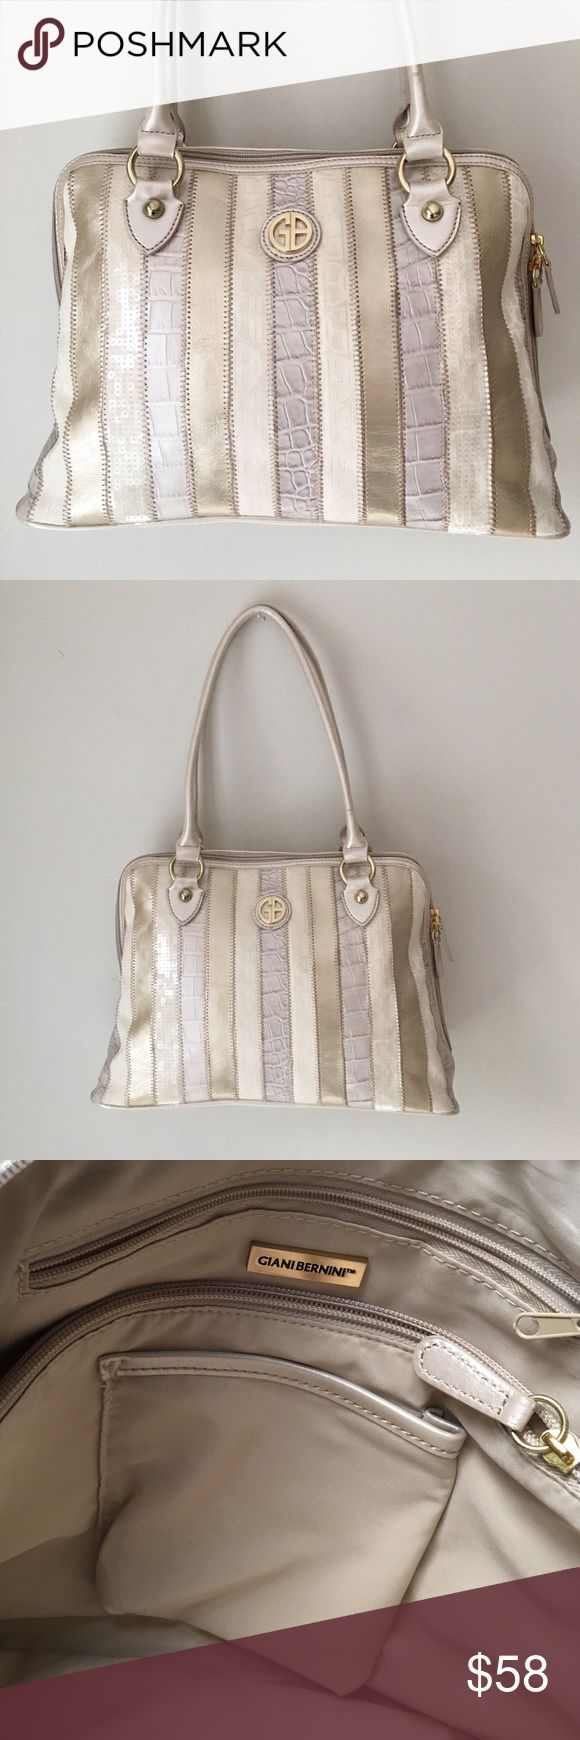 """Giani Bernini Ivory/Gold Stripe Shoulder Bag Gorgeous ivory/pale gold stripe shoulder bag by Gianni Bernini. Stripes vary - pale gold /ivory beads that look like sequin/logo fabric/snakeskin pattern. Depth: 5"""" width: 14"""" length: 9 3/4"""" Handles: all the way around – 21 1/2"""" Handle drop from the center: approx 9"""" Exterior zipper pocket on one side with the Giani Bernini goldtone logo on the front. Call hardware is gold tone. Interior has one center zip pocket and one side zip pocket. Can you…"""